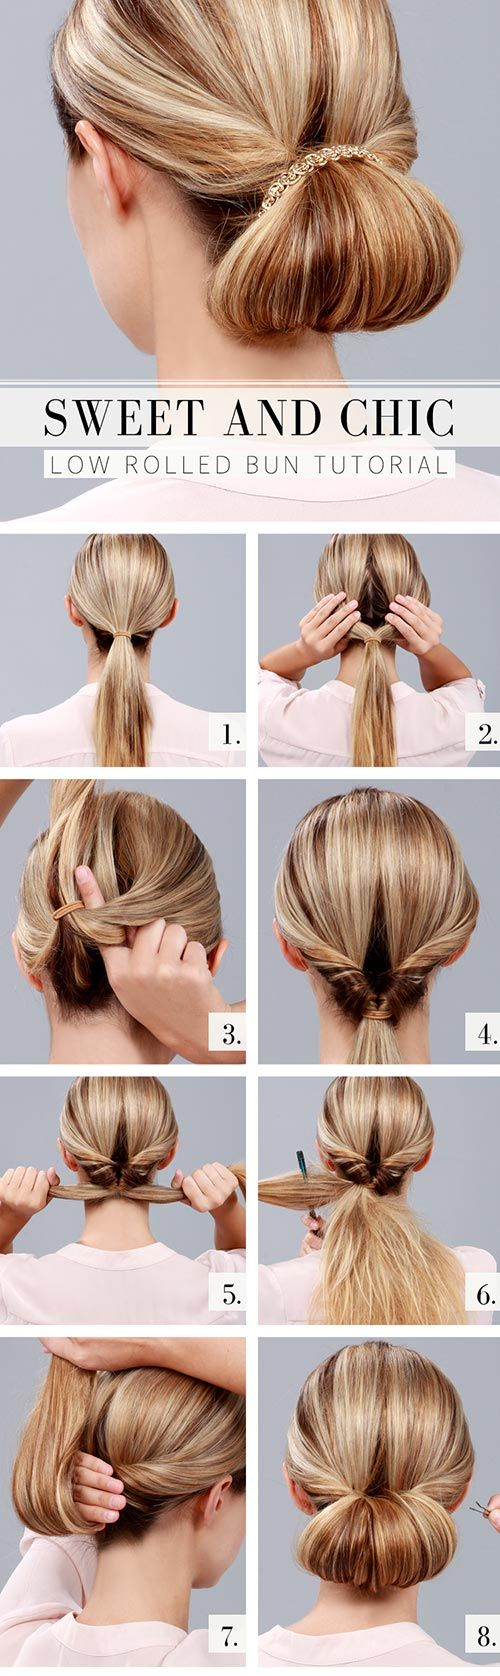 Simple Hairstyle Tutorials for Every Occasion  #hairstyletutorials #hairstyles